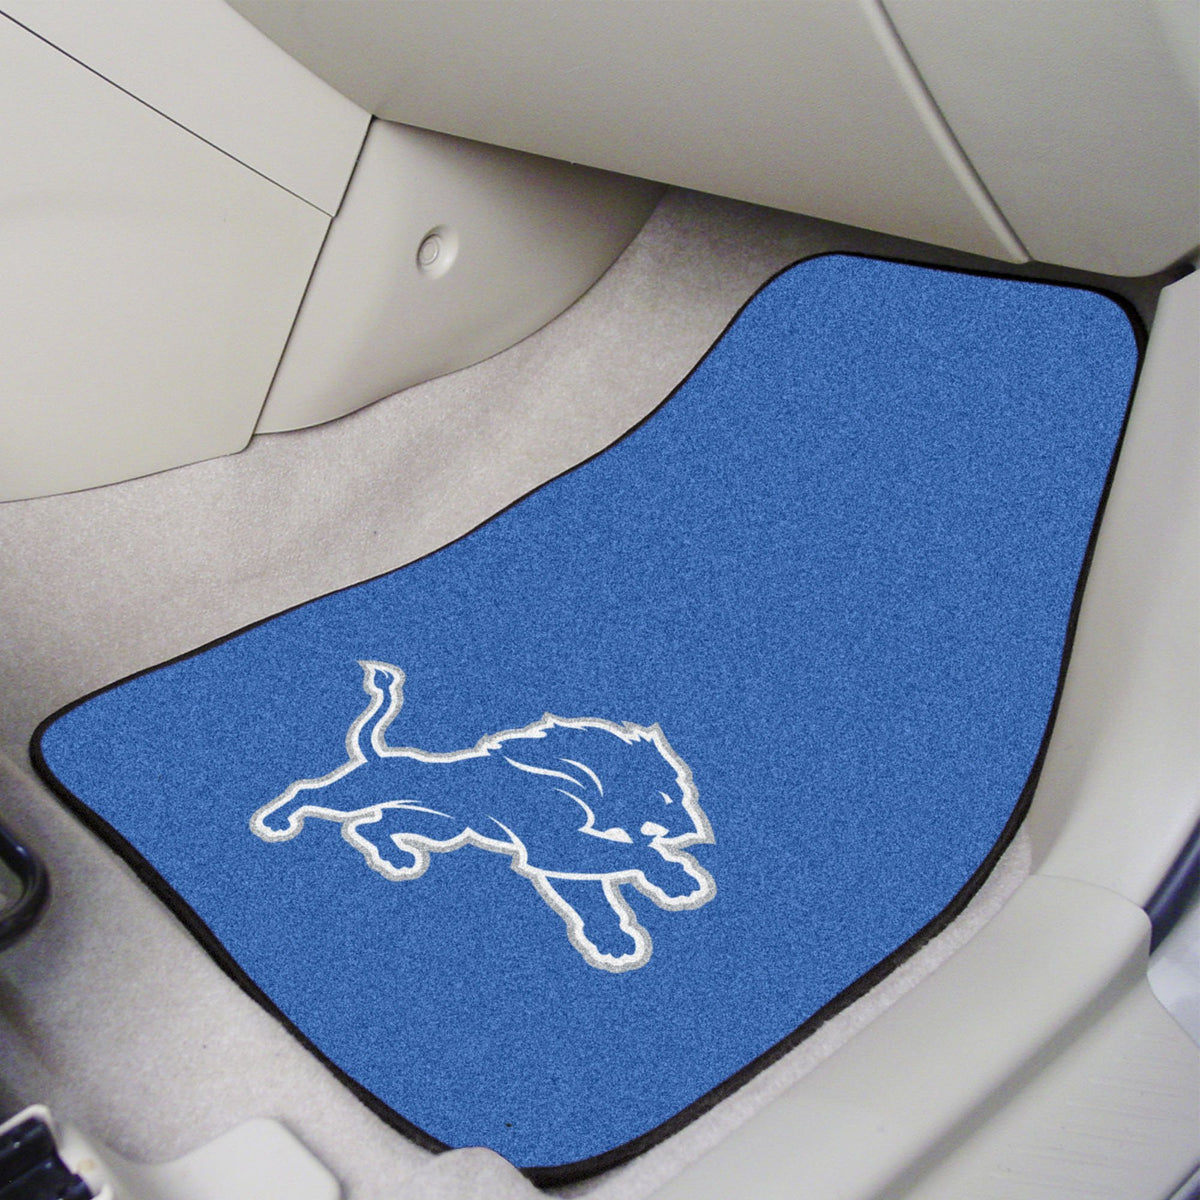 "NFL - 2-pc Carpet Car Mat Set, 17"" x 27"" NFL Mats, Front Car Mats, 2-pc Carpet Car Mat Set, NFL, Auto Fan Mats Detroit Lions"